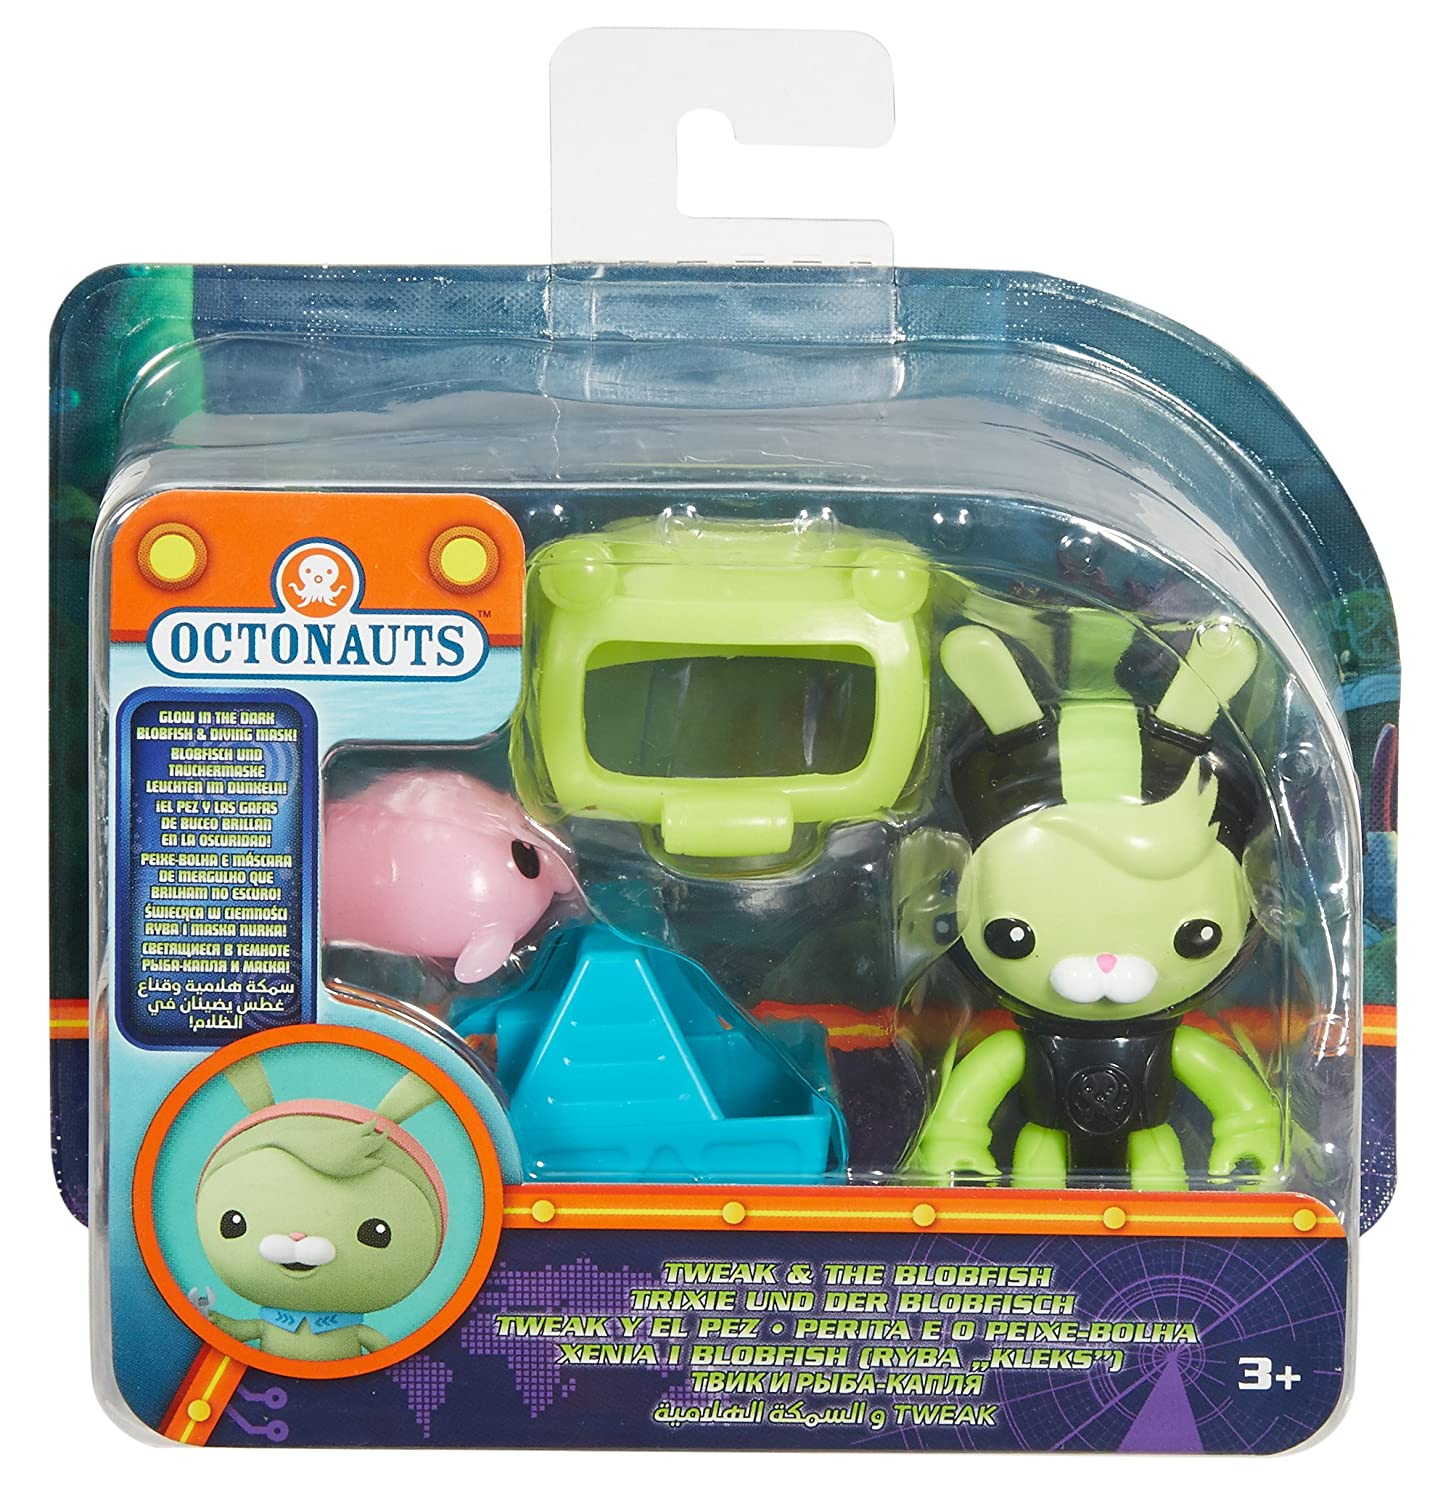 Amazon.com: Fisher-Price Octonauts Tweak & the Blobfish Toy Playset: Toys & Games